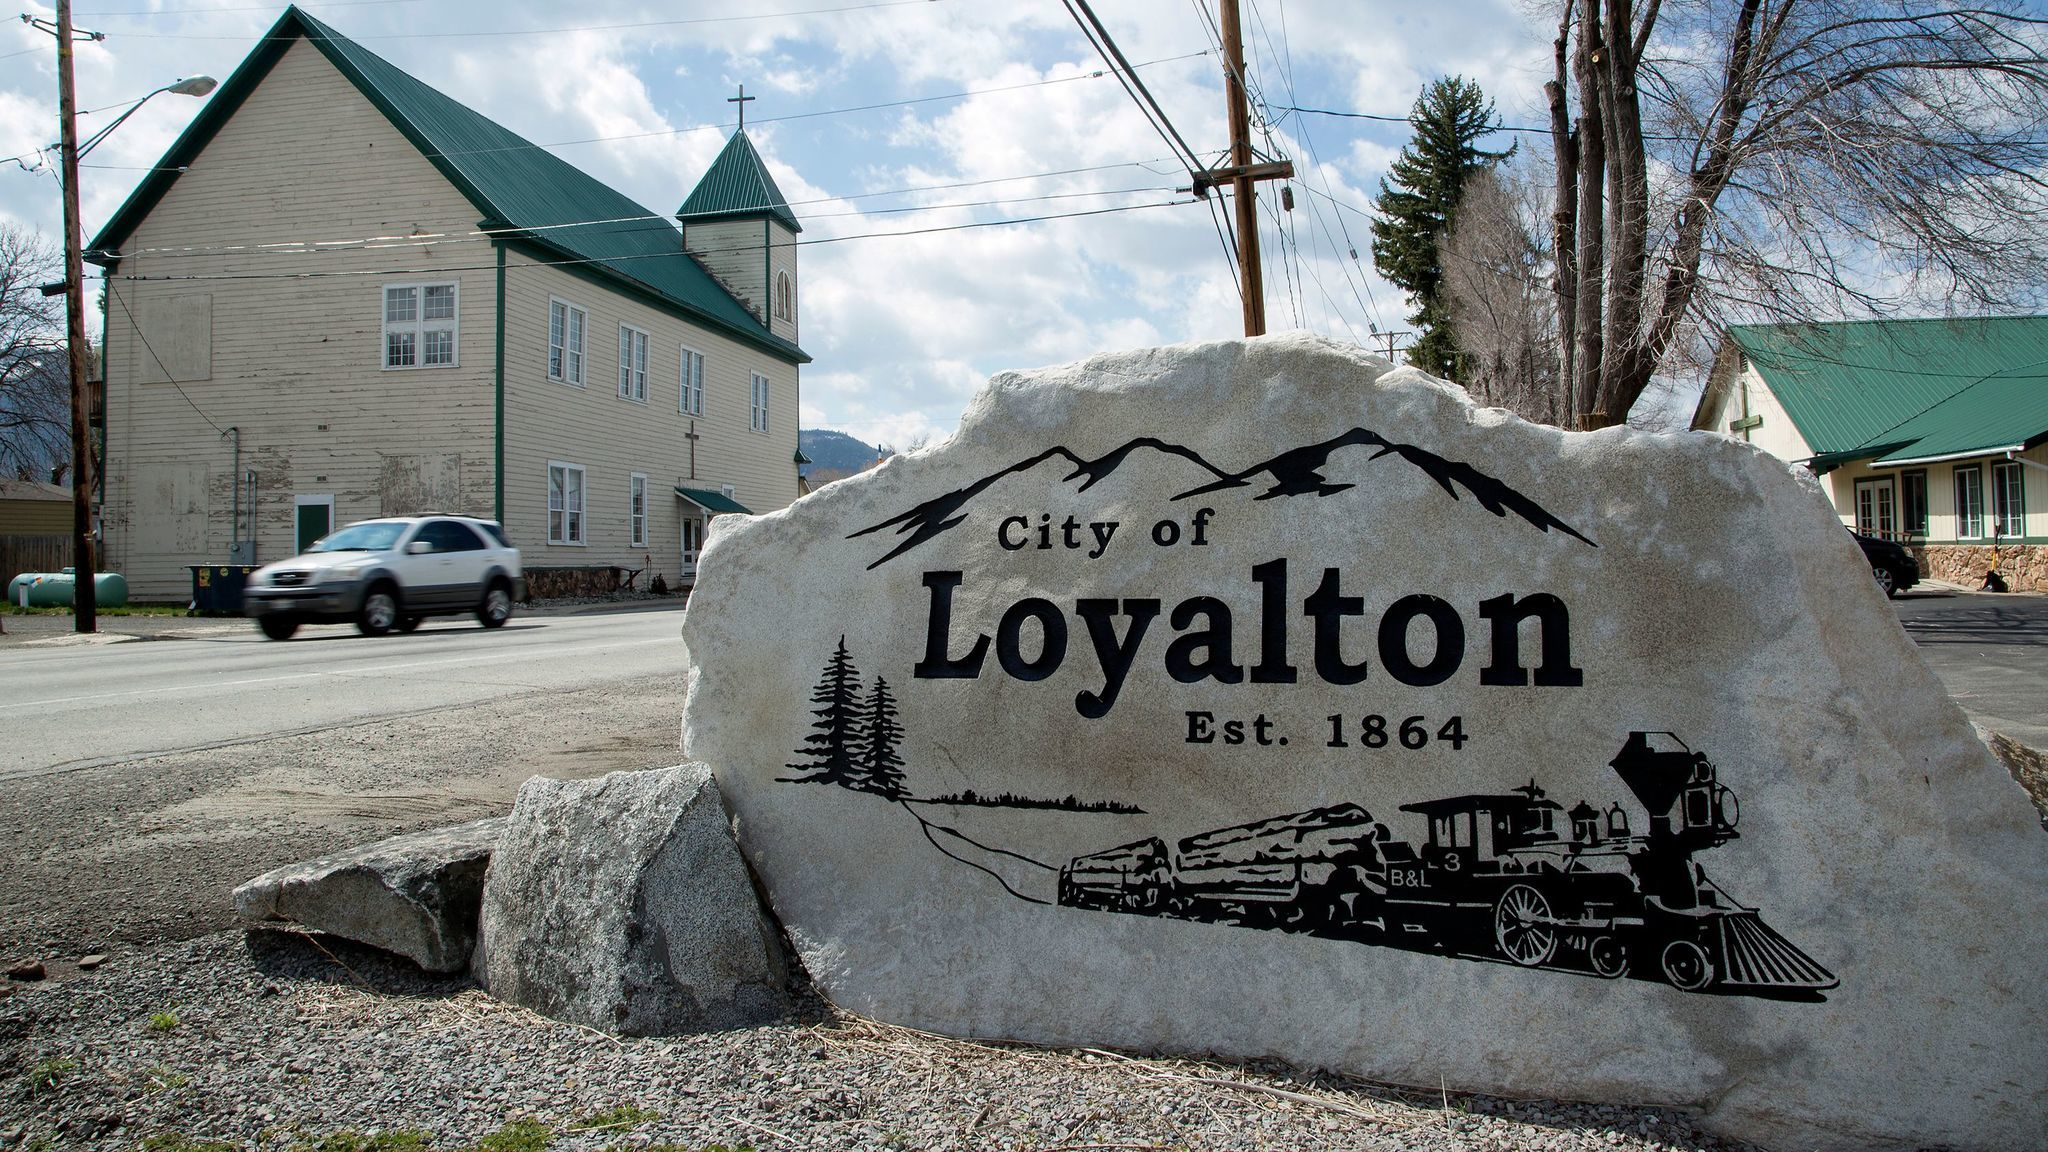 Loyalton's purchase of two $10,000 headstones was criticized as wasteful spending.